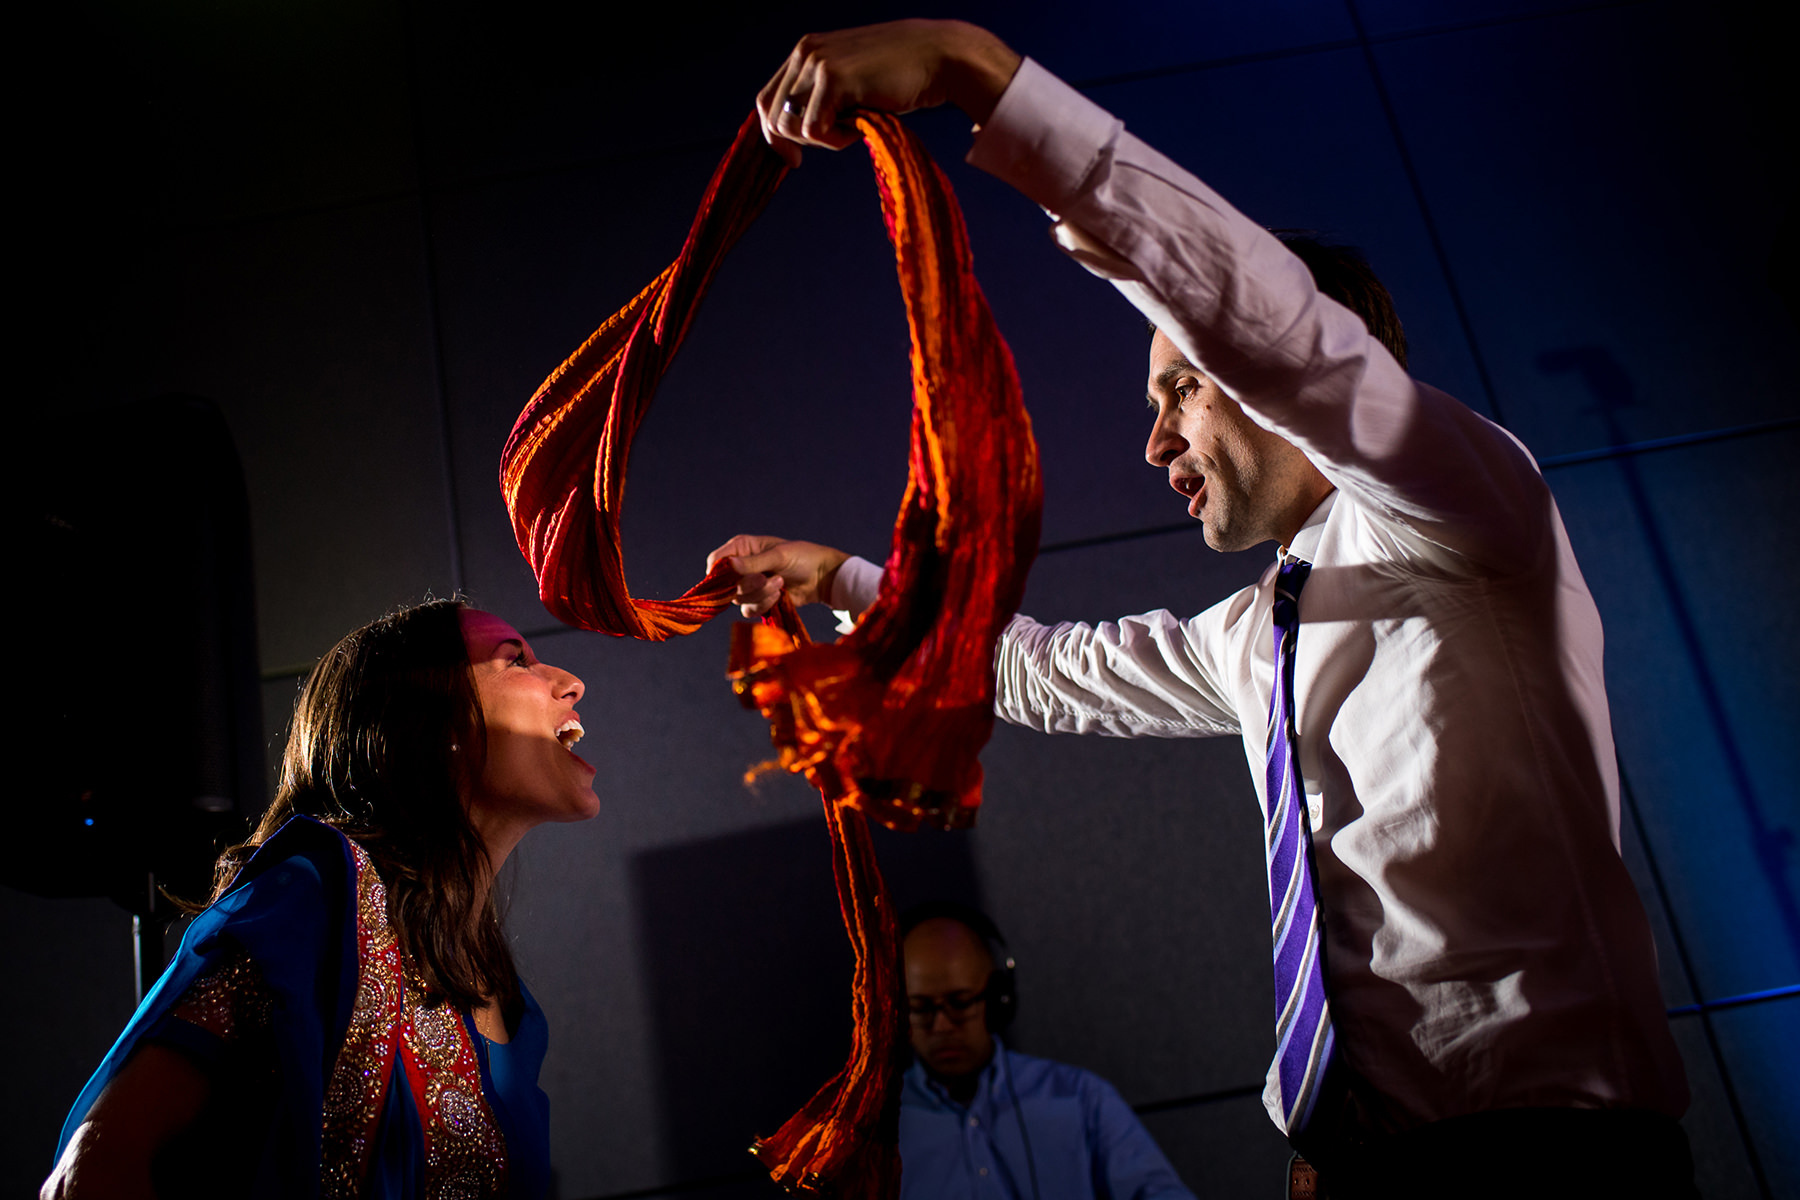 dancing with Indian wedding scarf